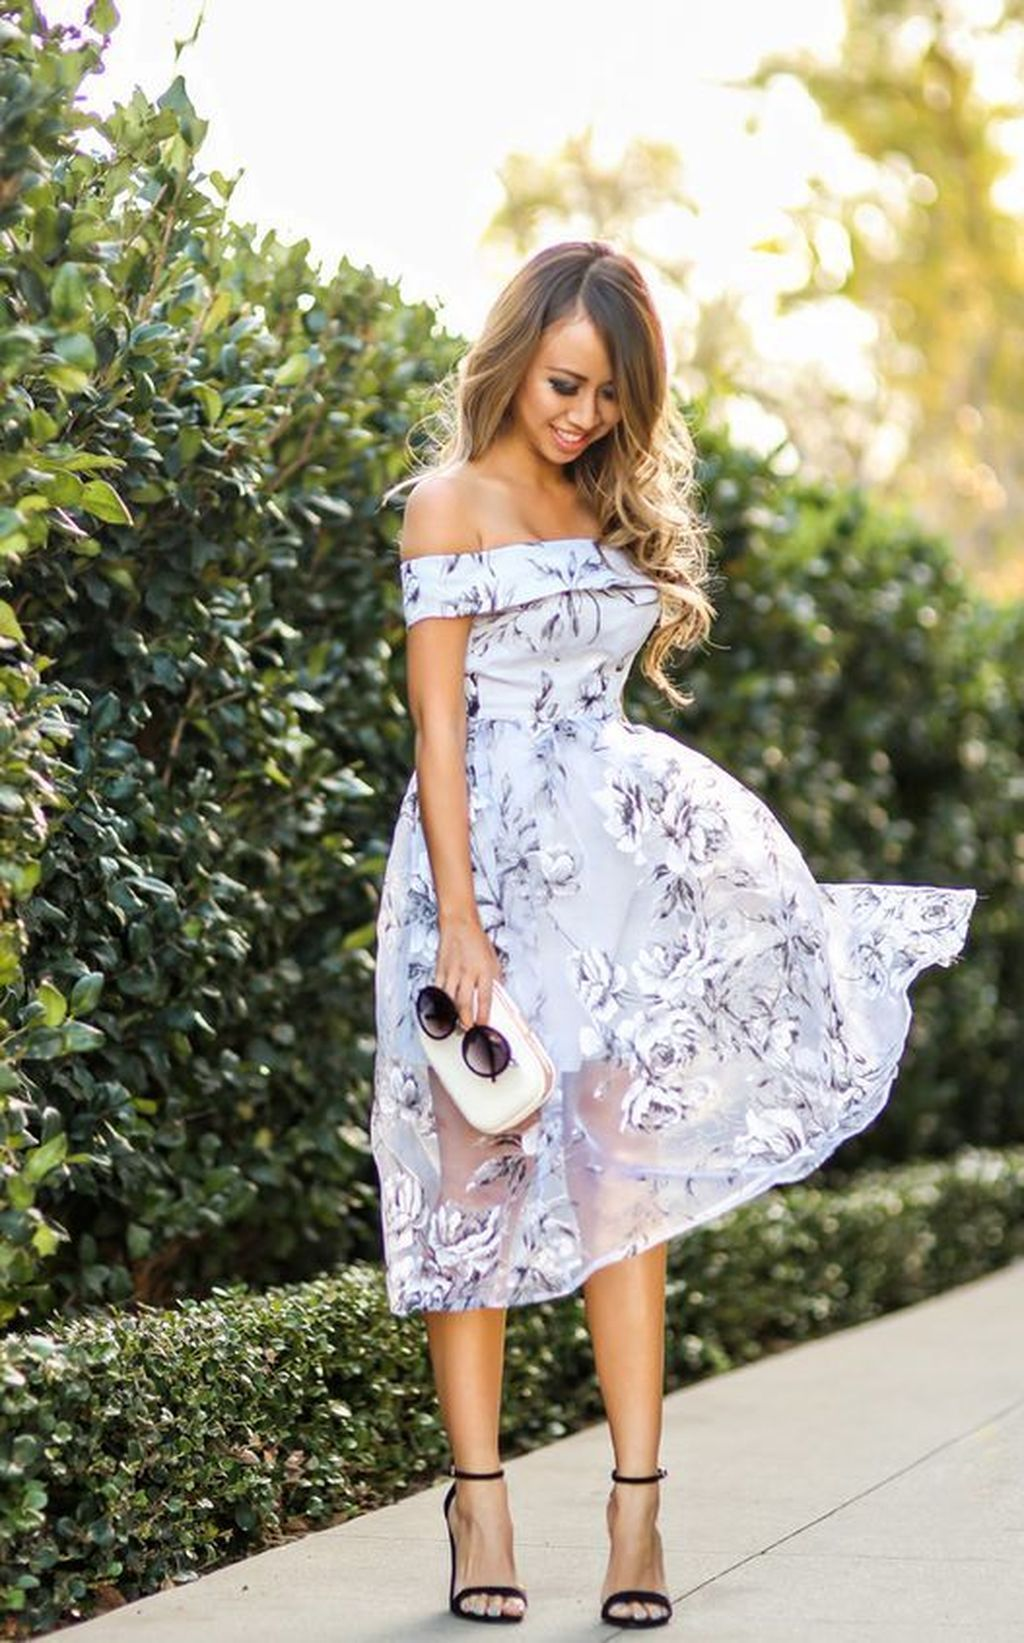 Going To A Summer Wedding Here S The Outfit Inspiration You Need Wedding Guest Dress Summer Wedding Attire Guest Beach Wedding Guest Dress [ 1359 x 900 Pixel ]